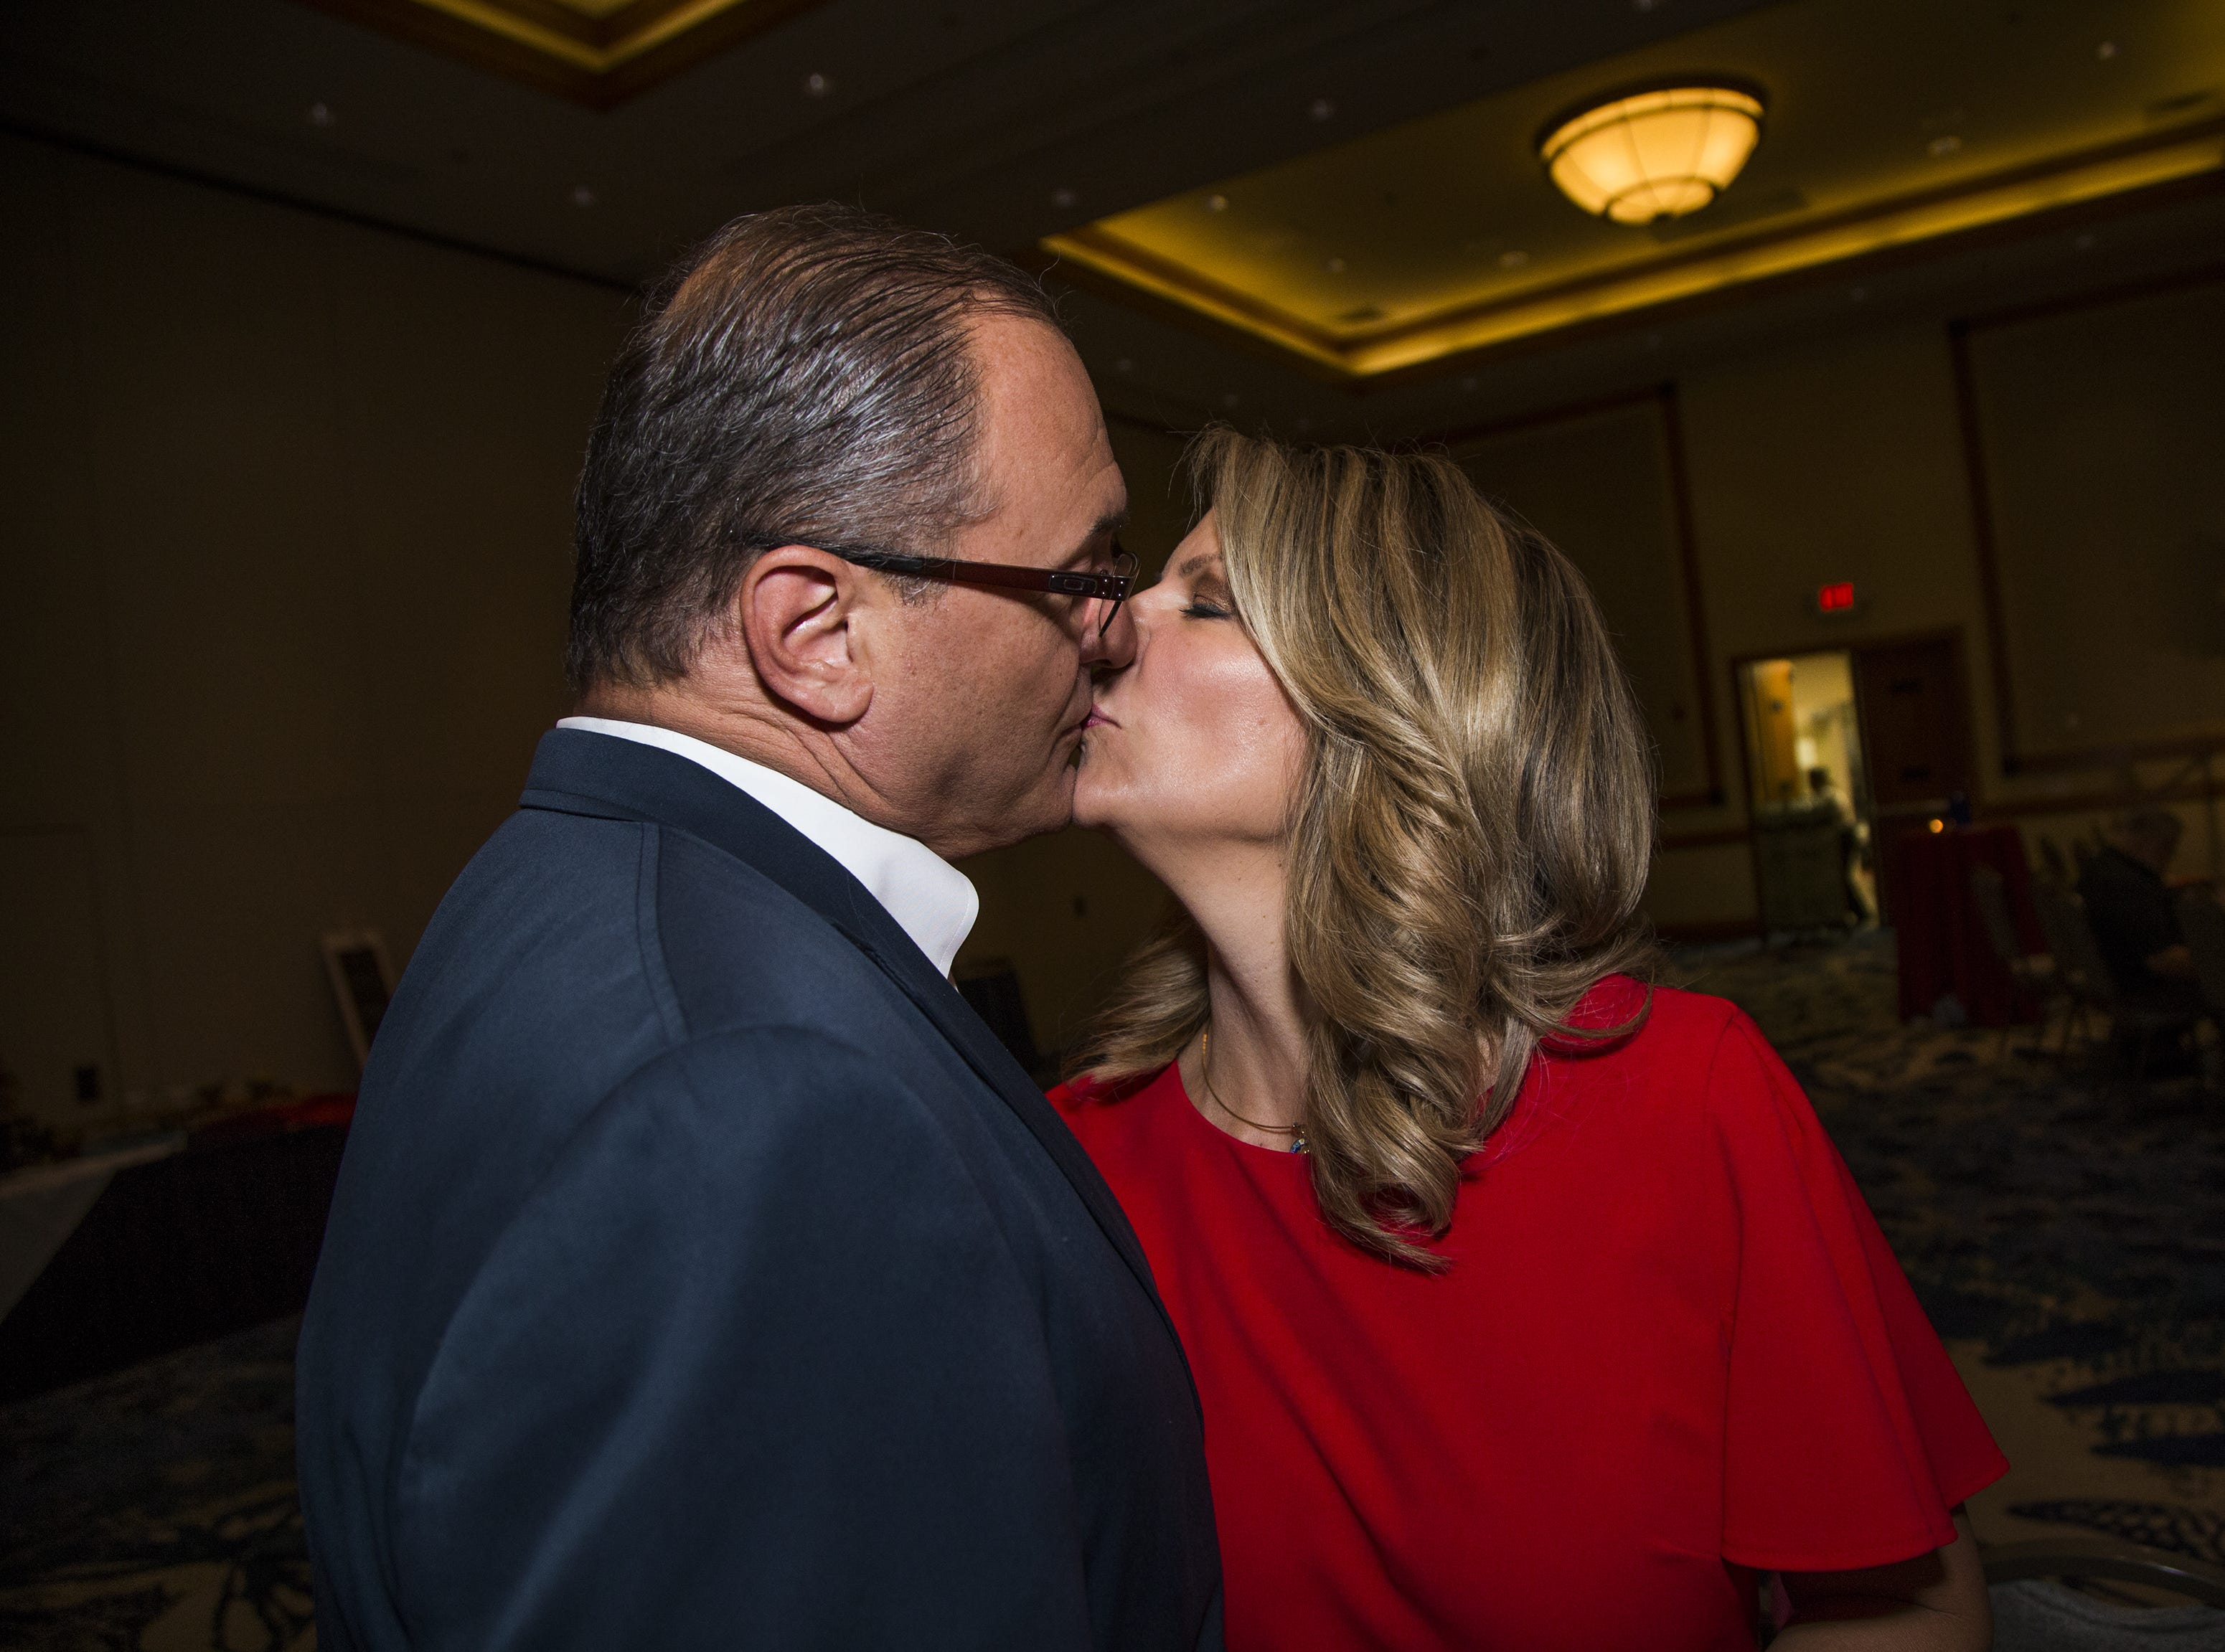 Kelli Ward gets a kiss from her husband, Dr. Michael Ward, before greeting a primary election night party at Embassy Suites Scottsdale on Aug. 28, 2018.